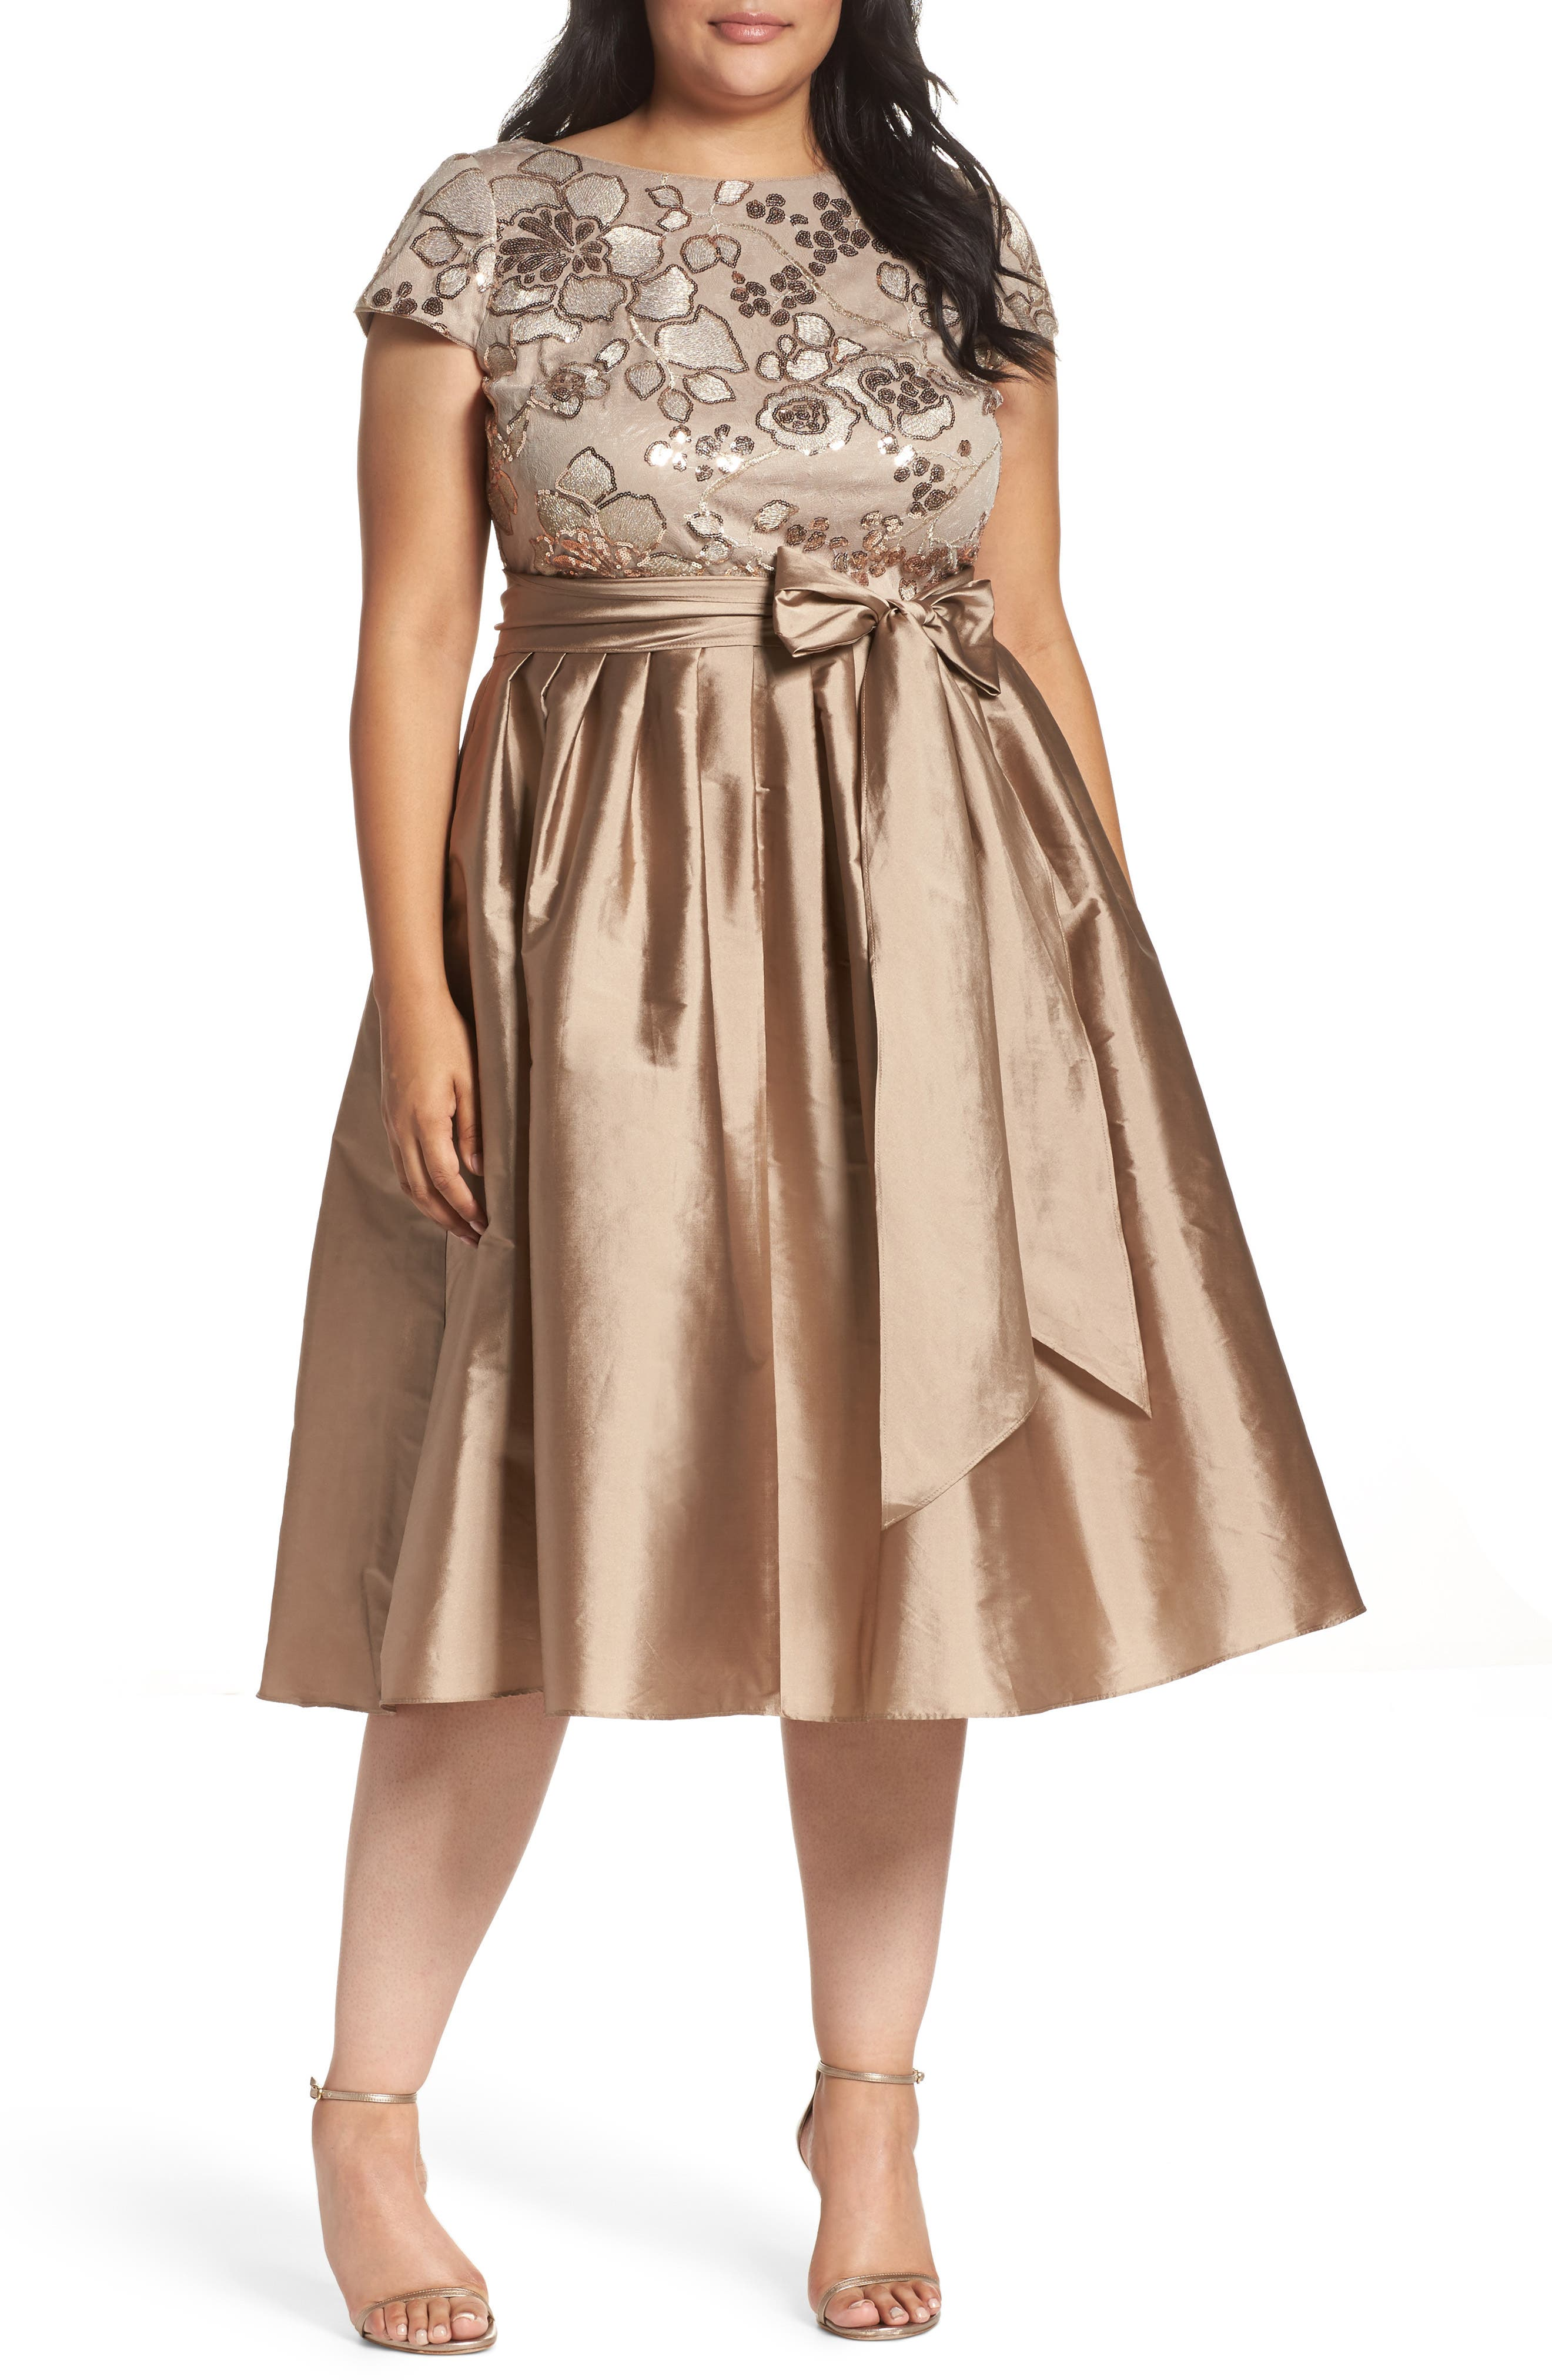 Embellished Bodice Party Dress,                             Main thumbnail 1, color,                             223